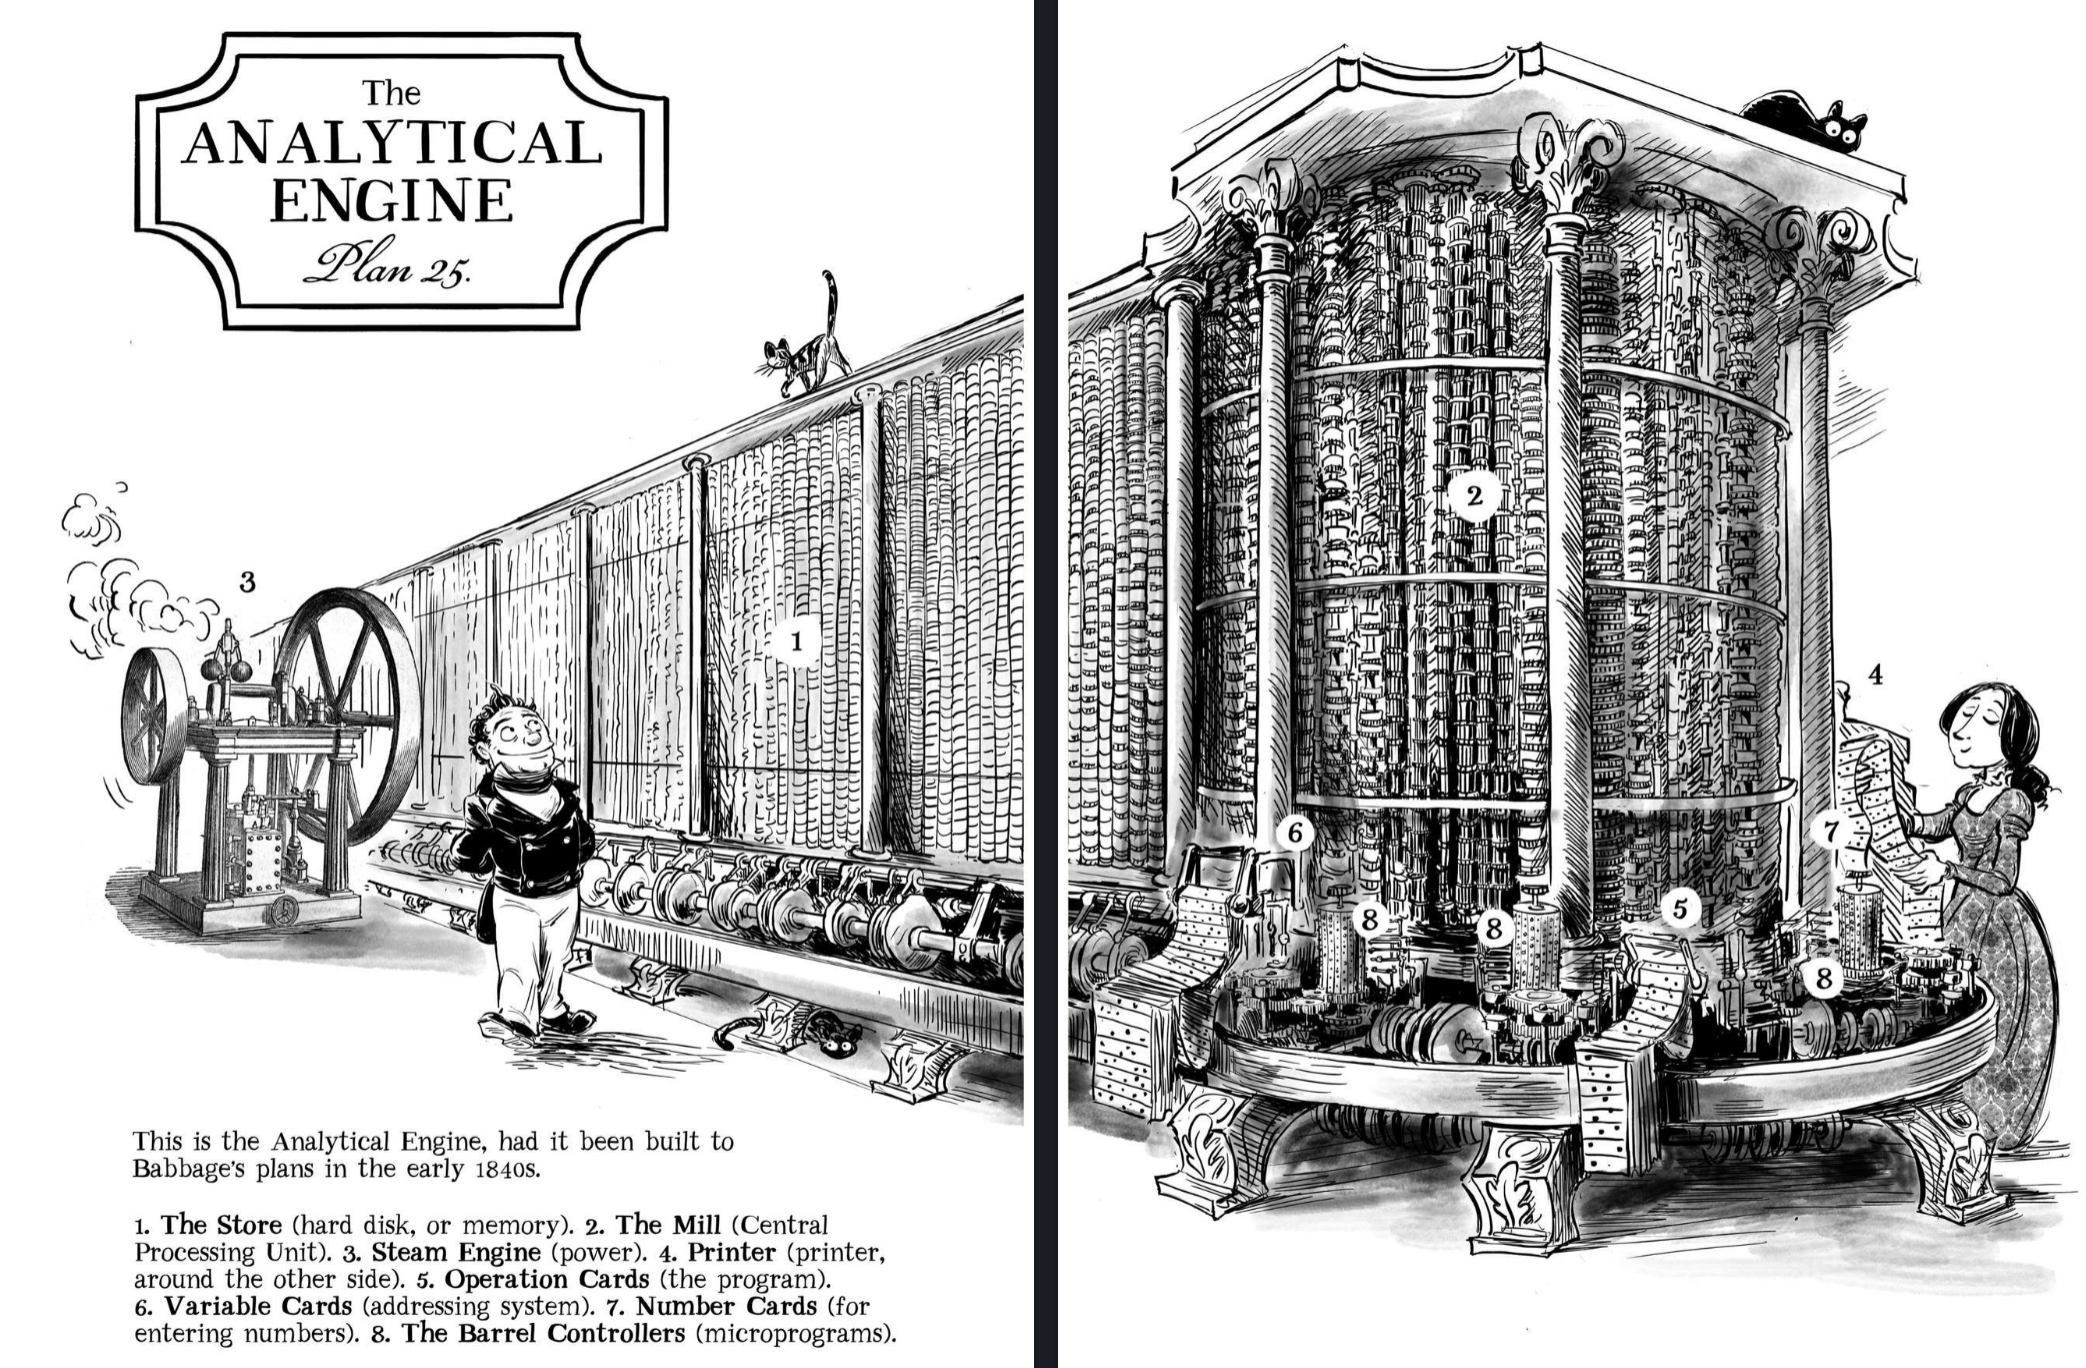 The Analytical Engine